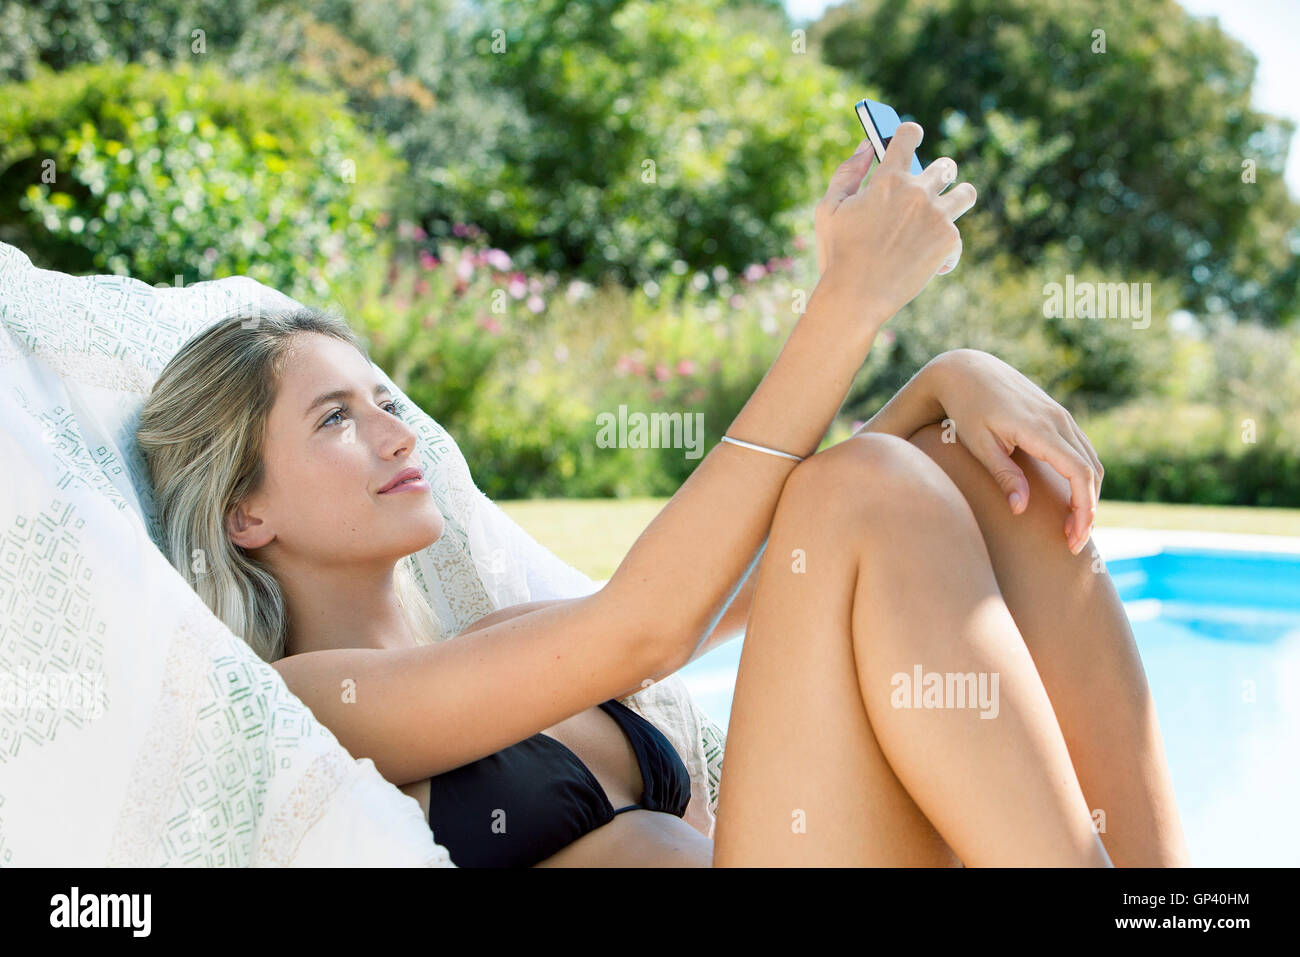 woman relaxing by pool using smartphone to take a selfie stock